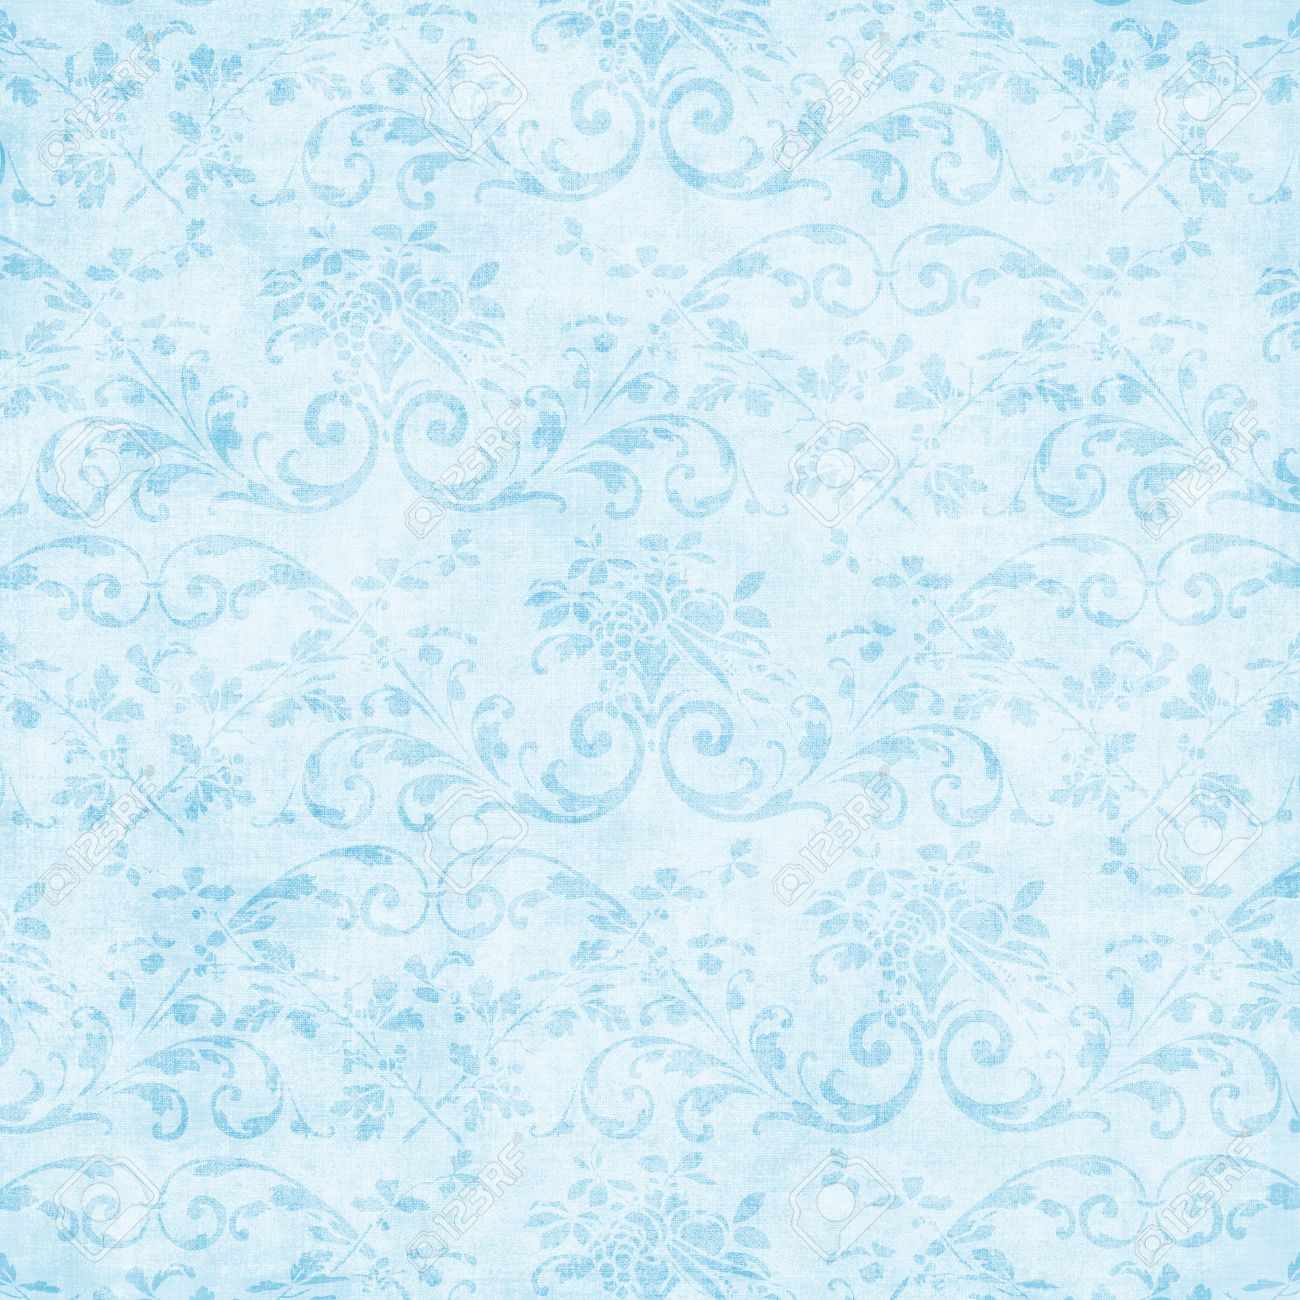 Vintage Light Blue Floral Tapestry Stock Photo Picture And Royalty